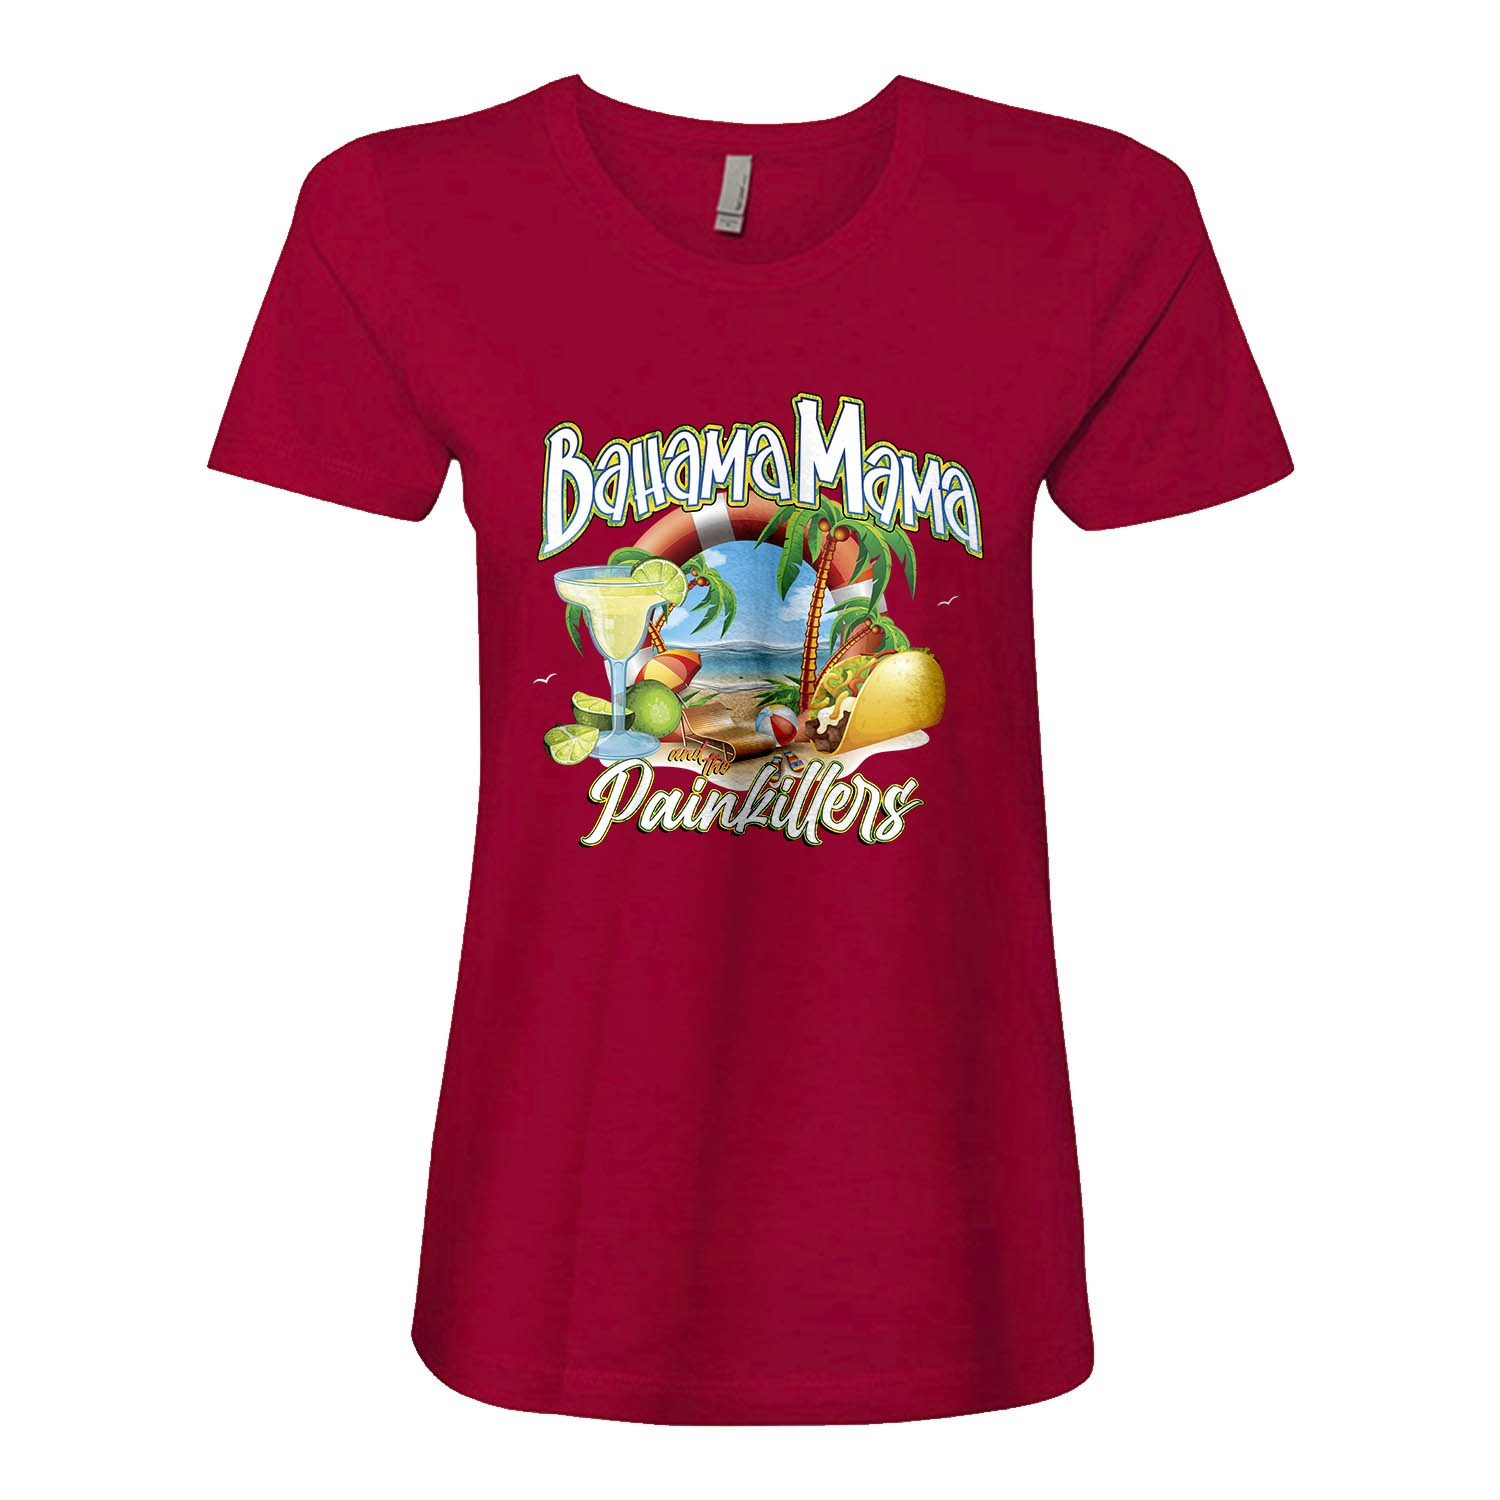 Bahama Mama and the Painkillers Double T Womens Fitted tee, The Troprock Shop